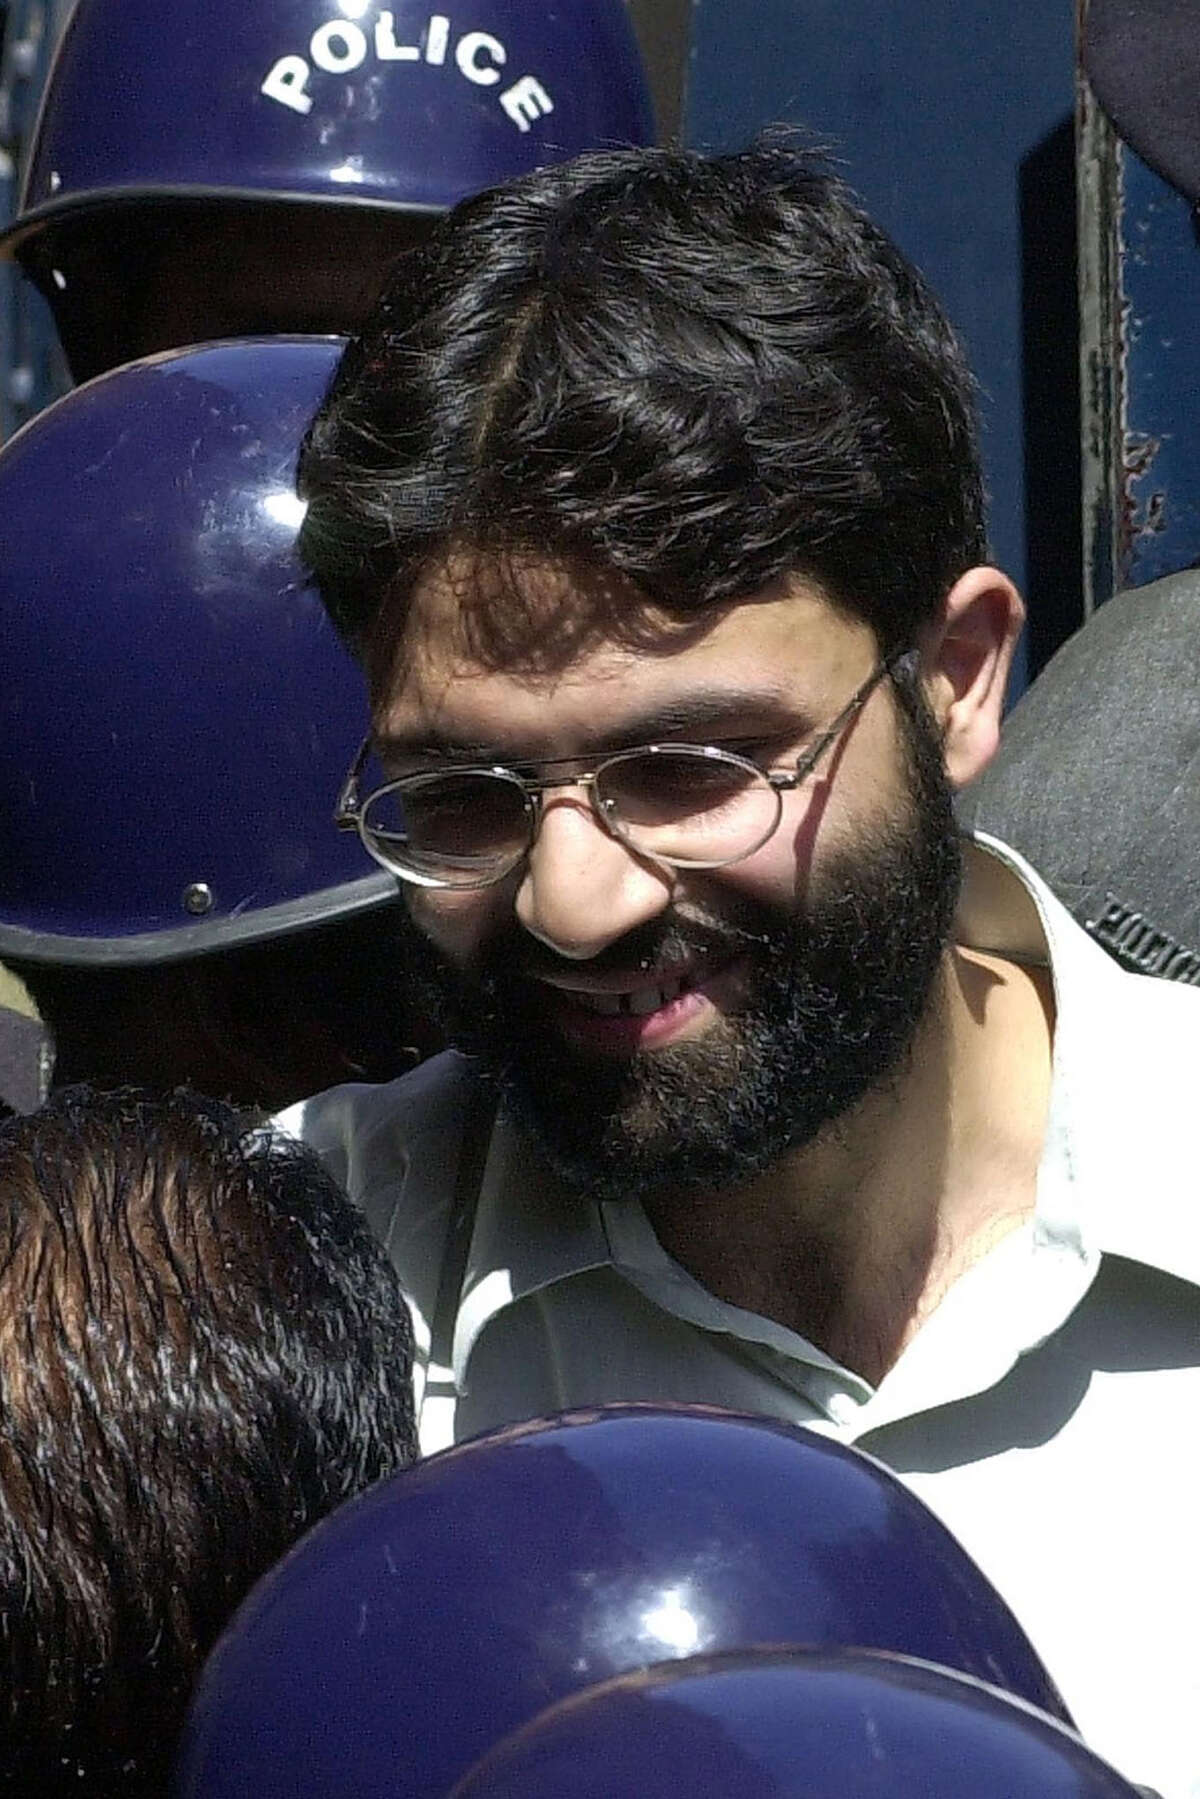 (FILES) In this file taken on March 29, 2002, Sheikh Omar, chief suspect of slain US journalist Daniel Pearl smiles while talking to Pakistani police officials in Karachi. - A Pakistani court on April 2, 2020 overturned the death sentence for British-born militant Ahmed Omar Saeed Sheikh, who had been convicted over the 2002 killing of American journalist Daniel Pearl. (Photo by Aamir QURESHI / AFP) (Photo by AAMIR QURESHI/AFP via Getty Images)